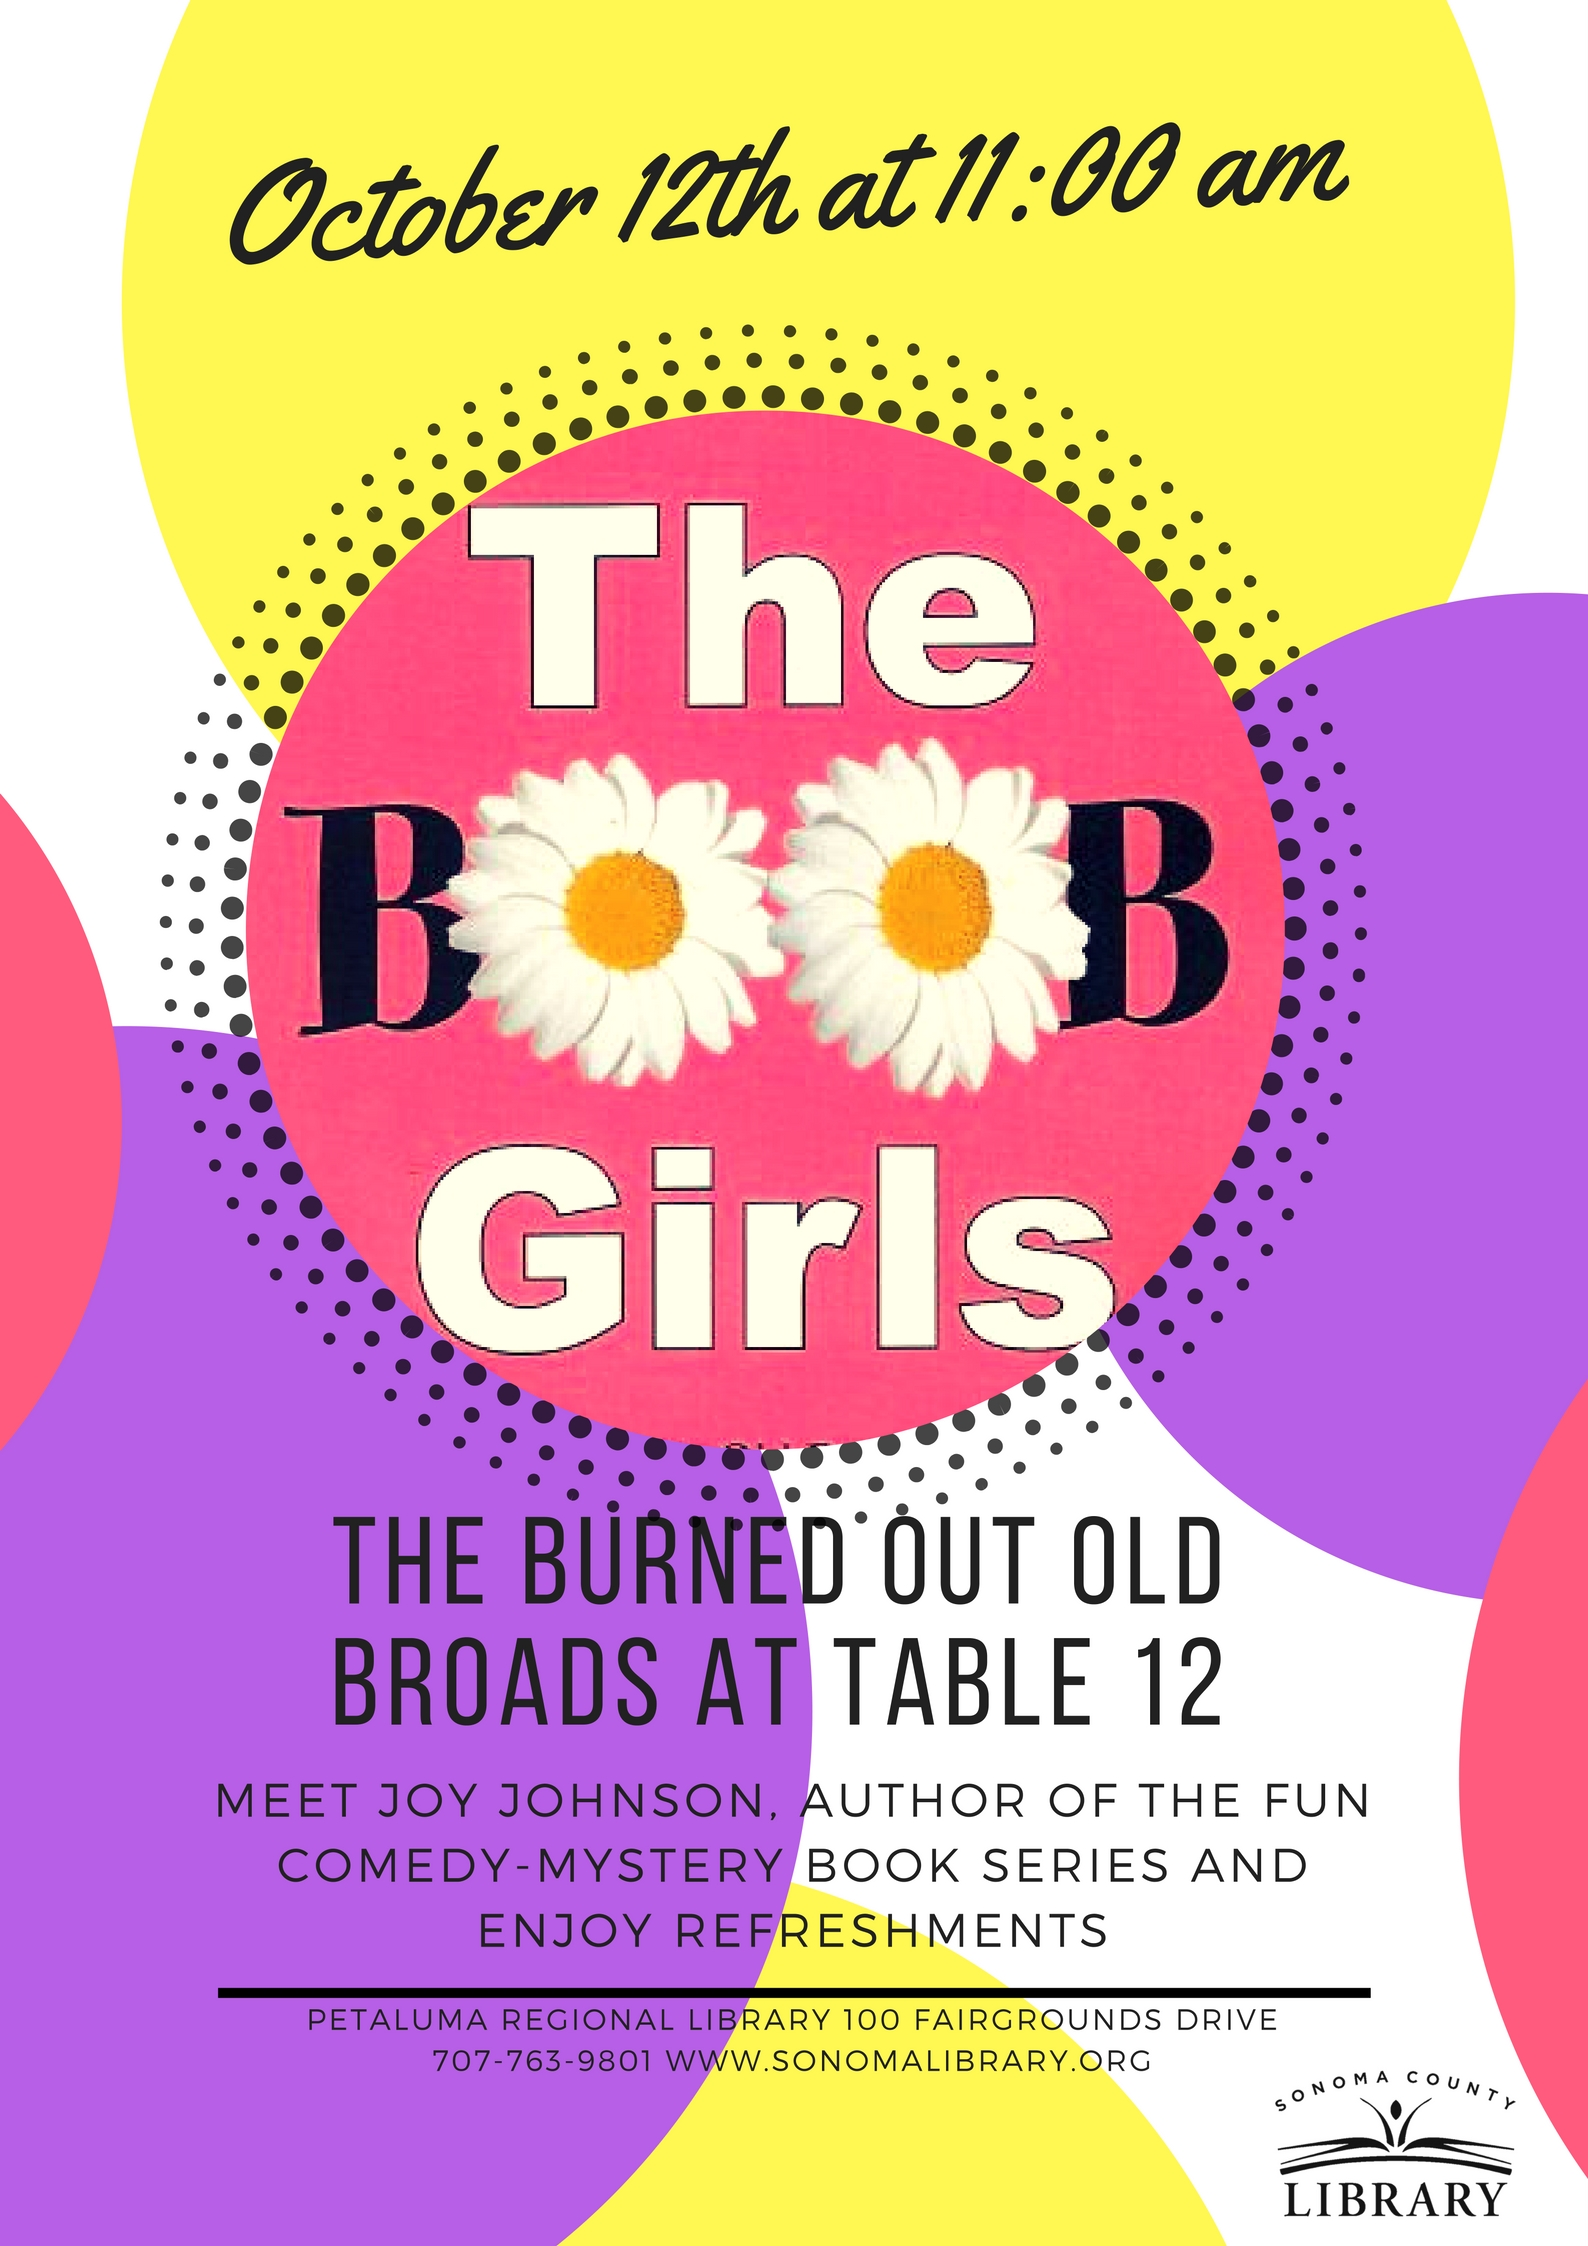 BOOB Girls Author Talk